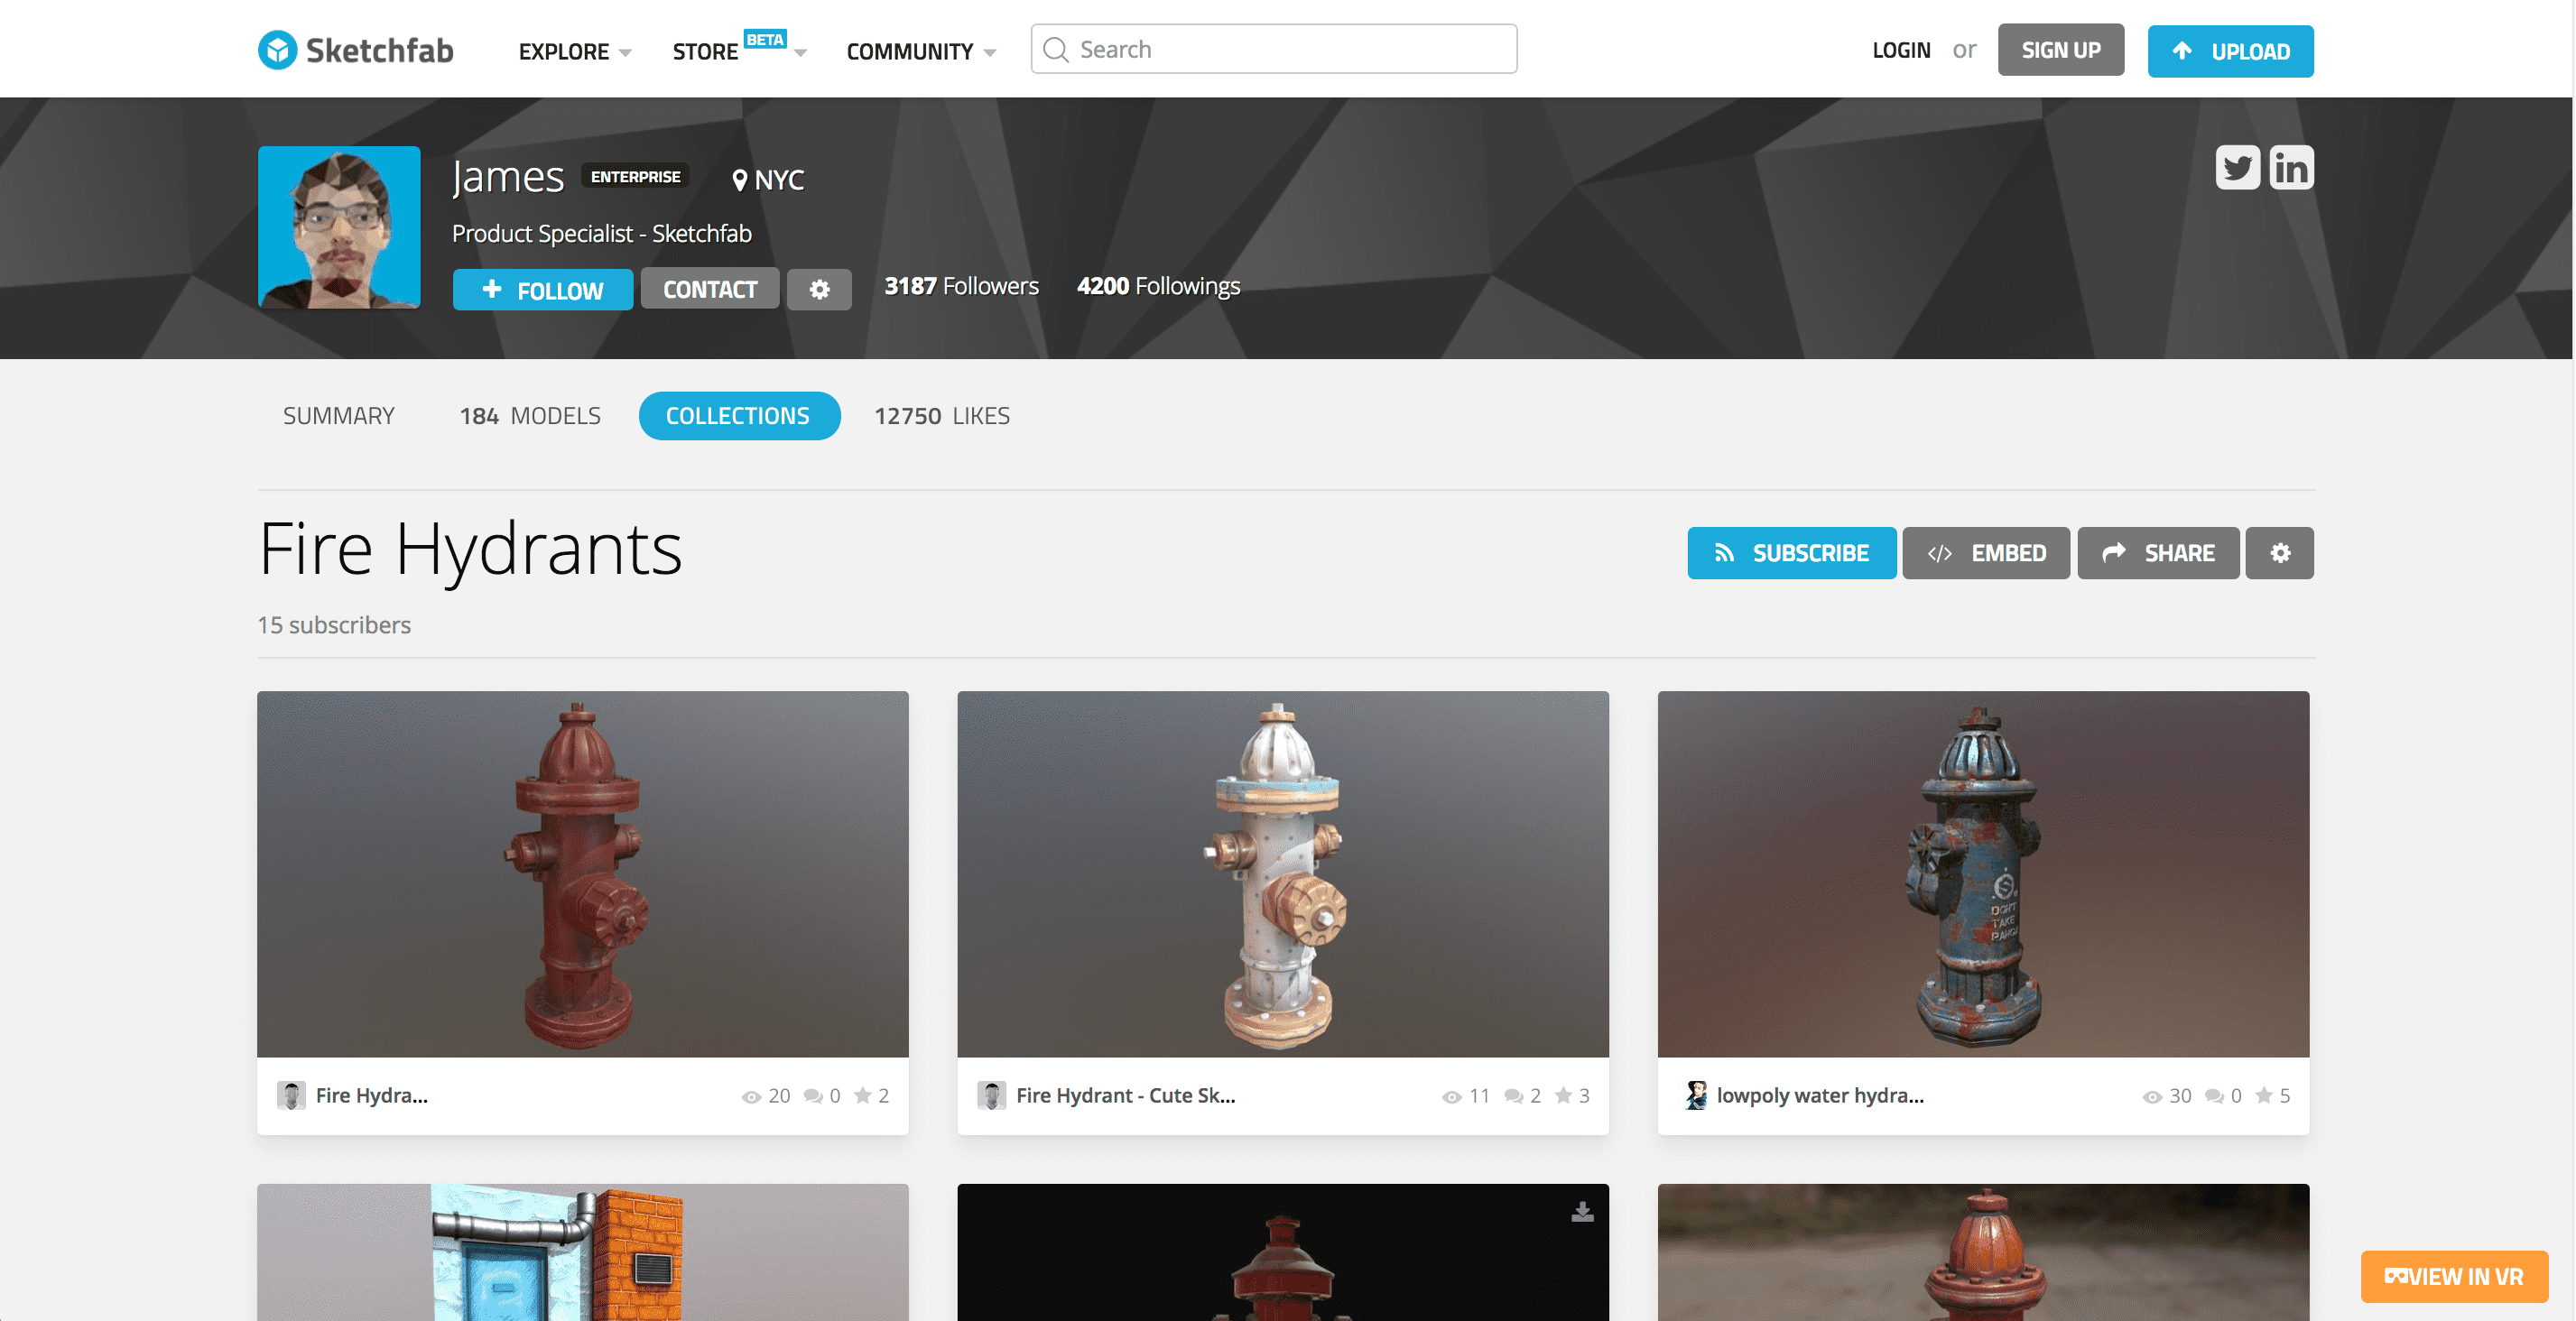 Sketchfab_3d_collections_models.png